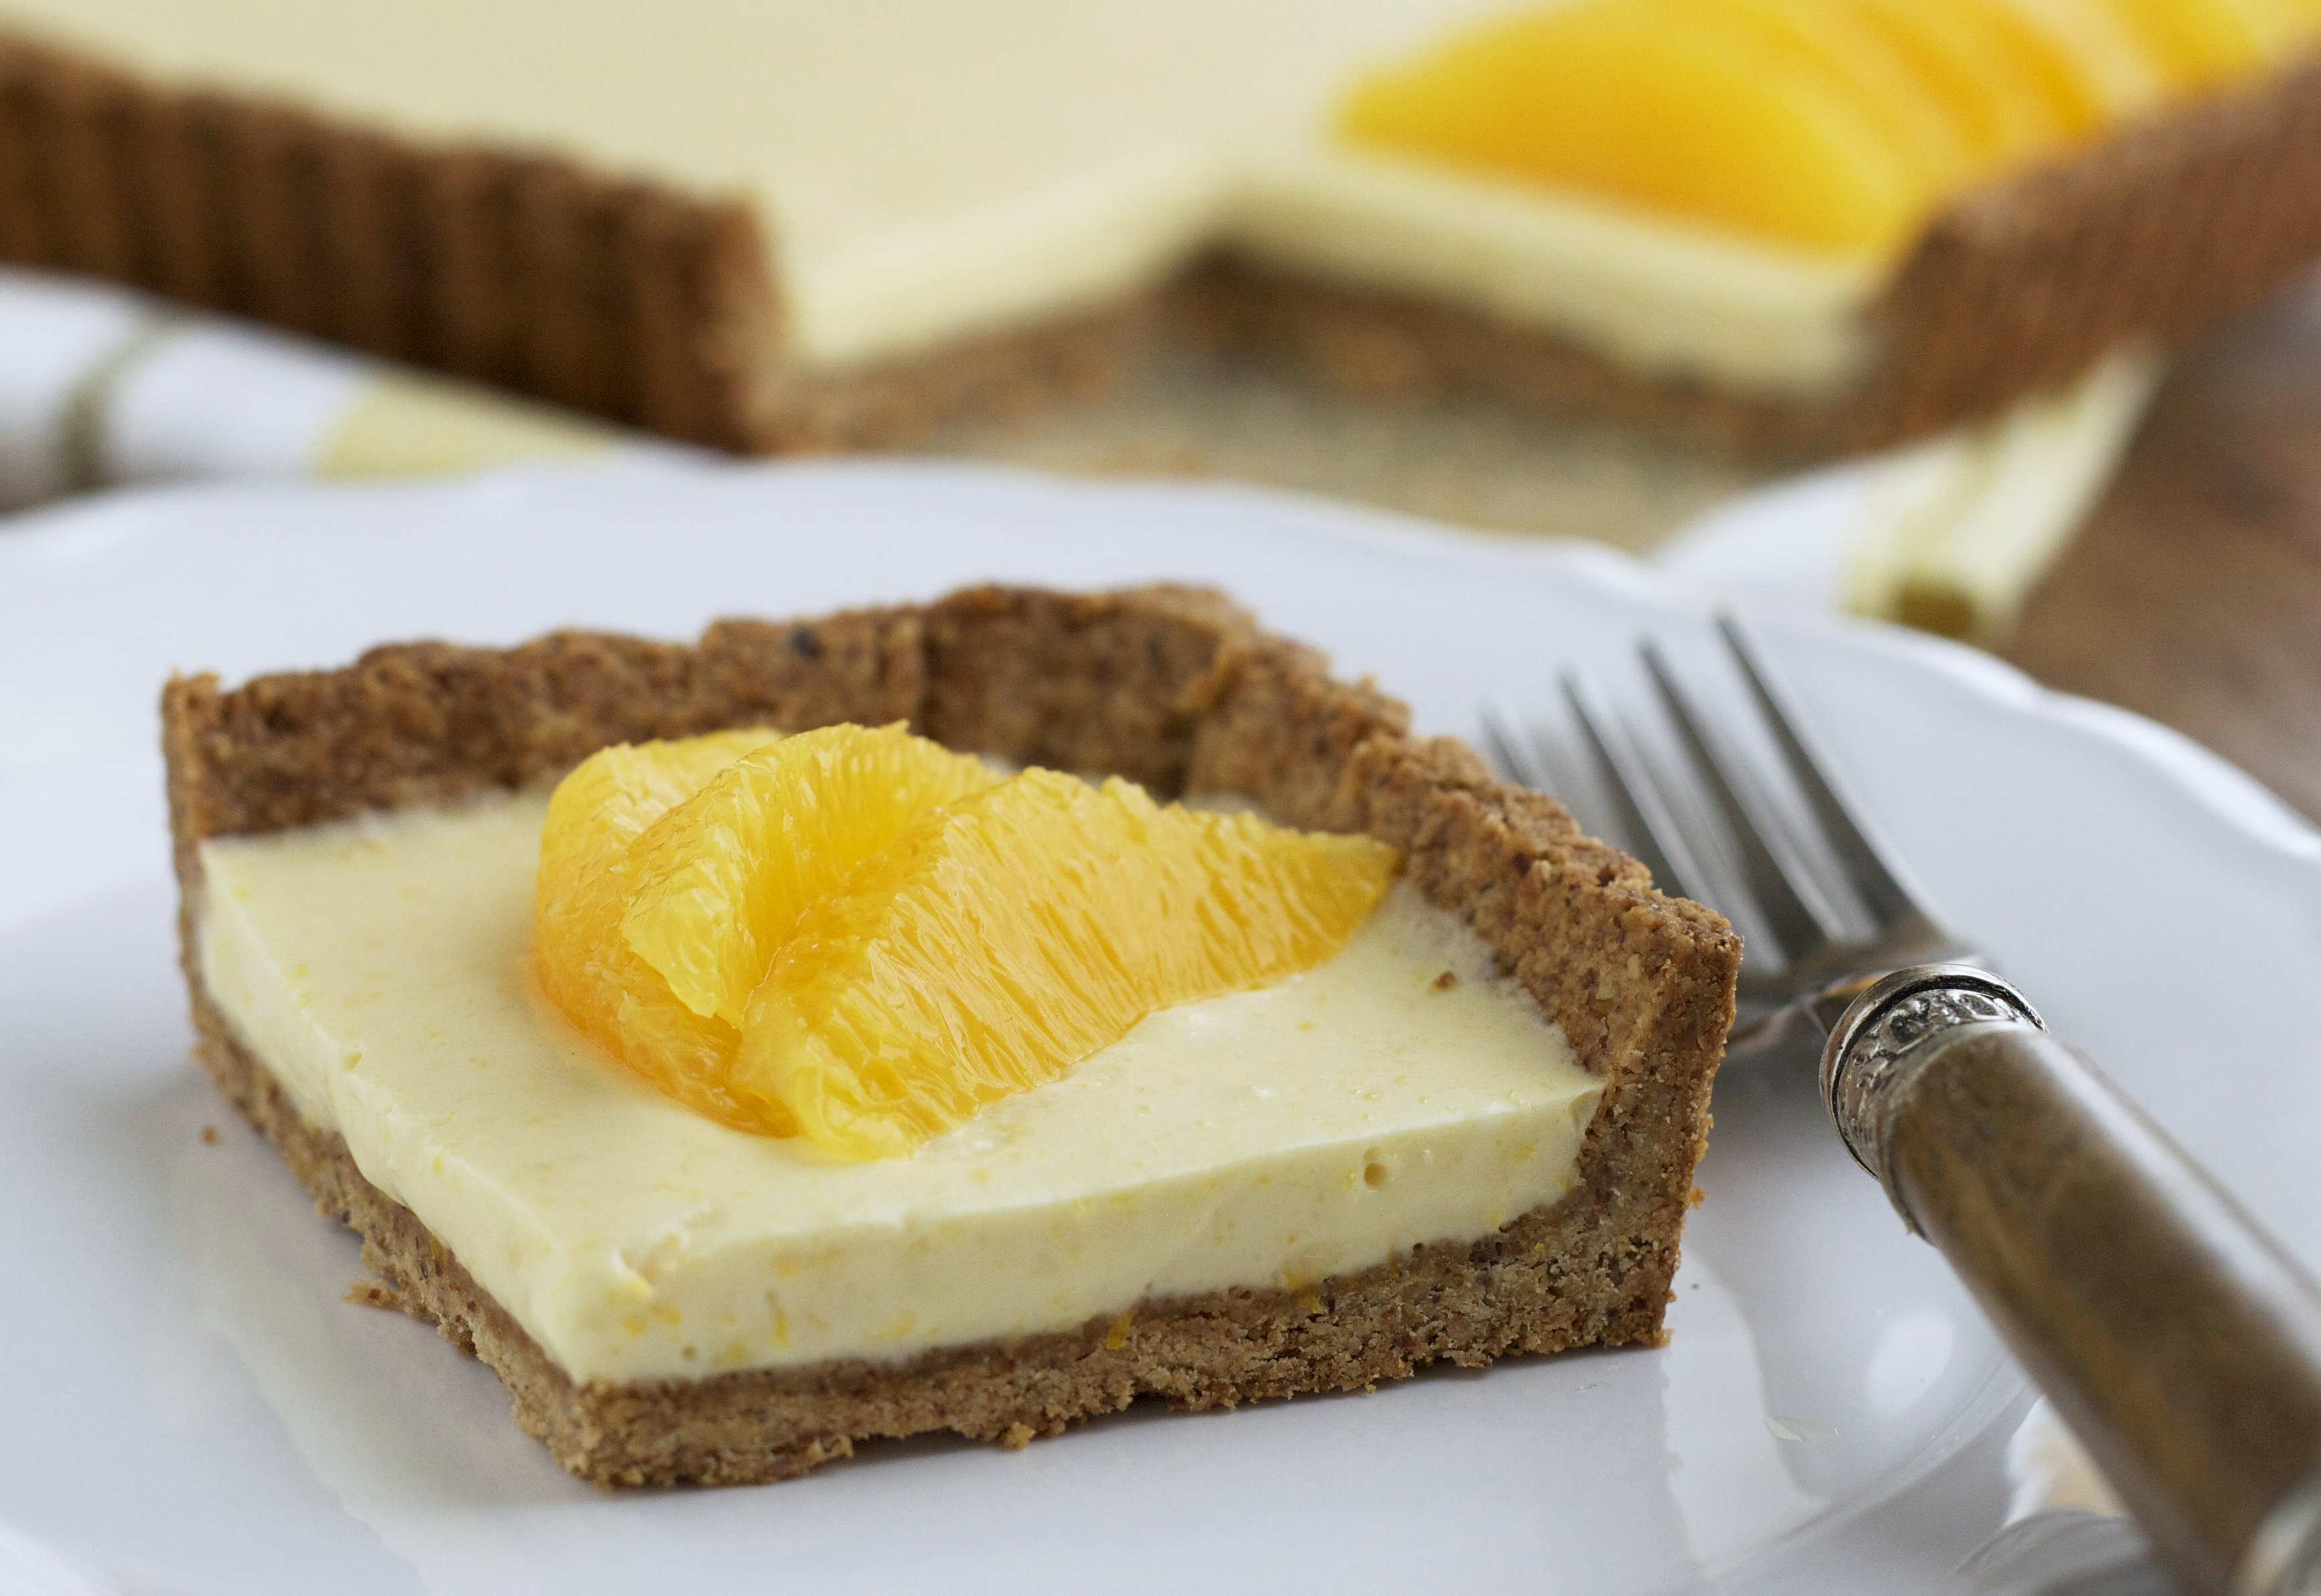 Cream Tart with Oranges and Toasted Almond Crust - Deliciously Organic